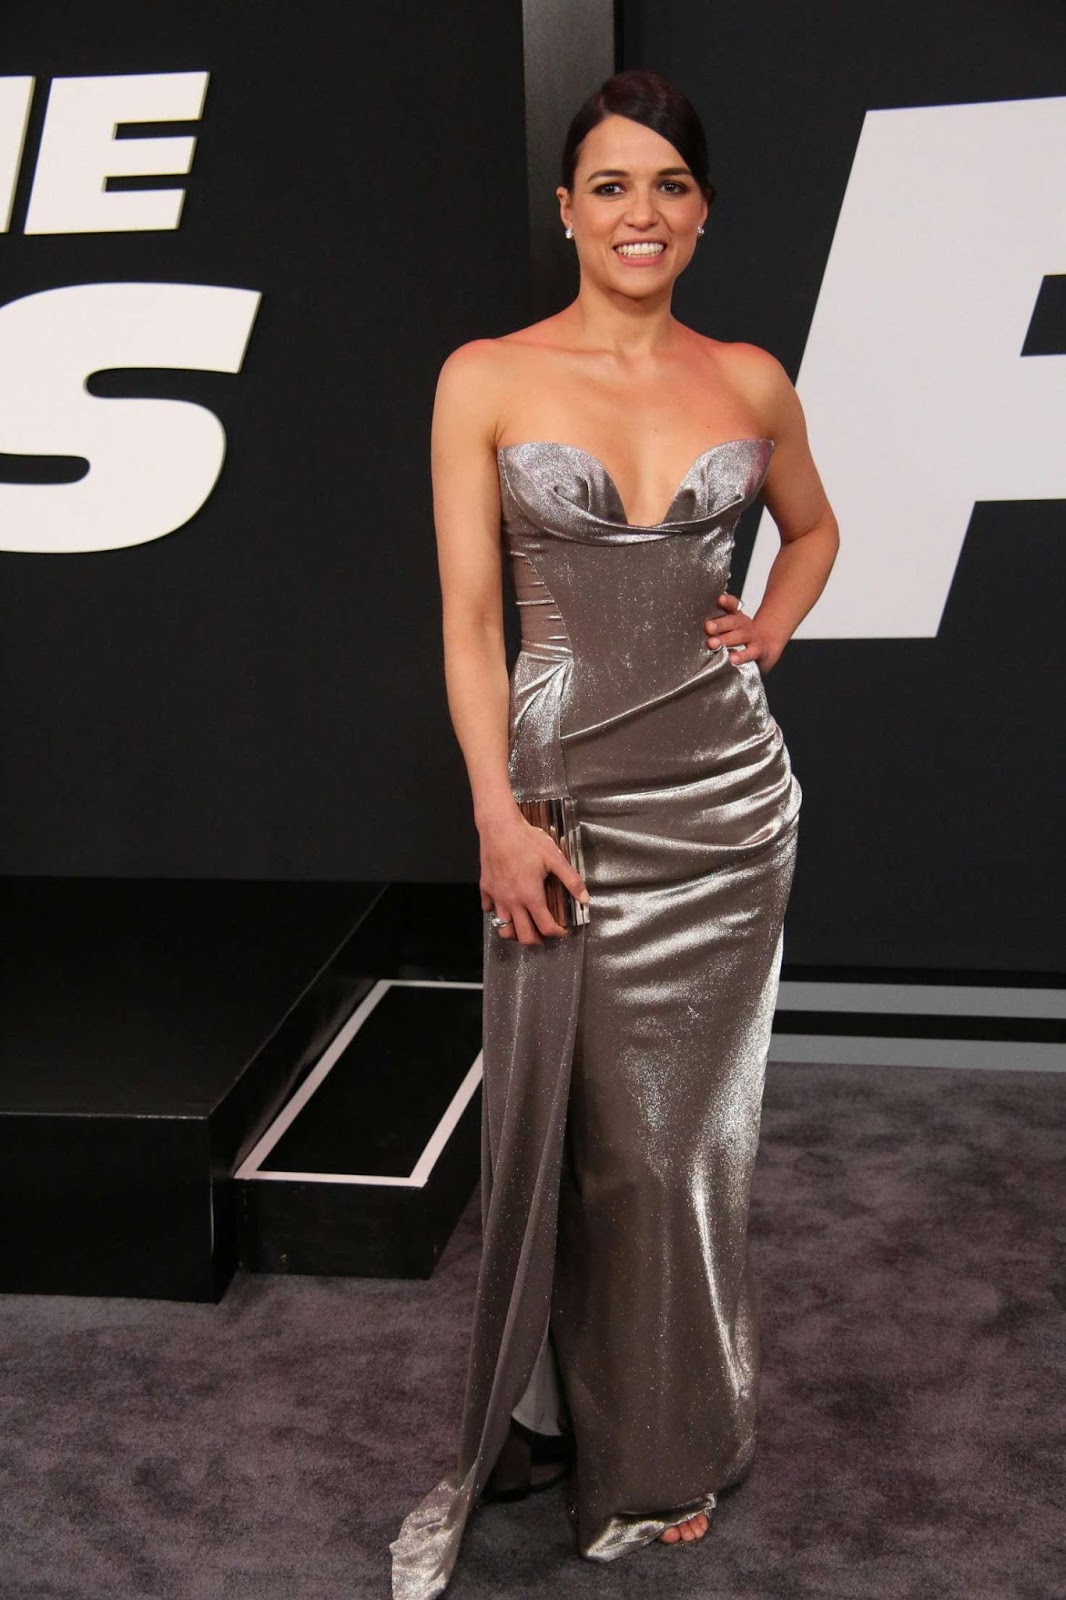 Michelle Rodriguez wears plunging metallic gown to the Fate of the Furious NY premiere